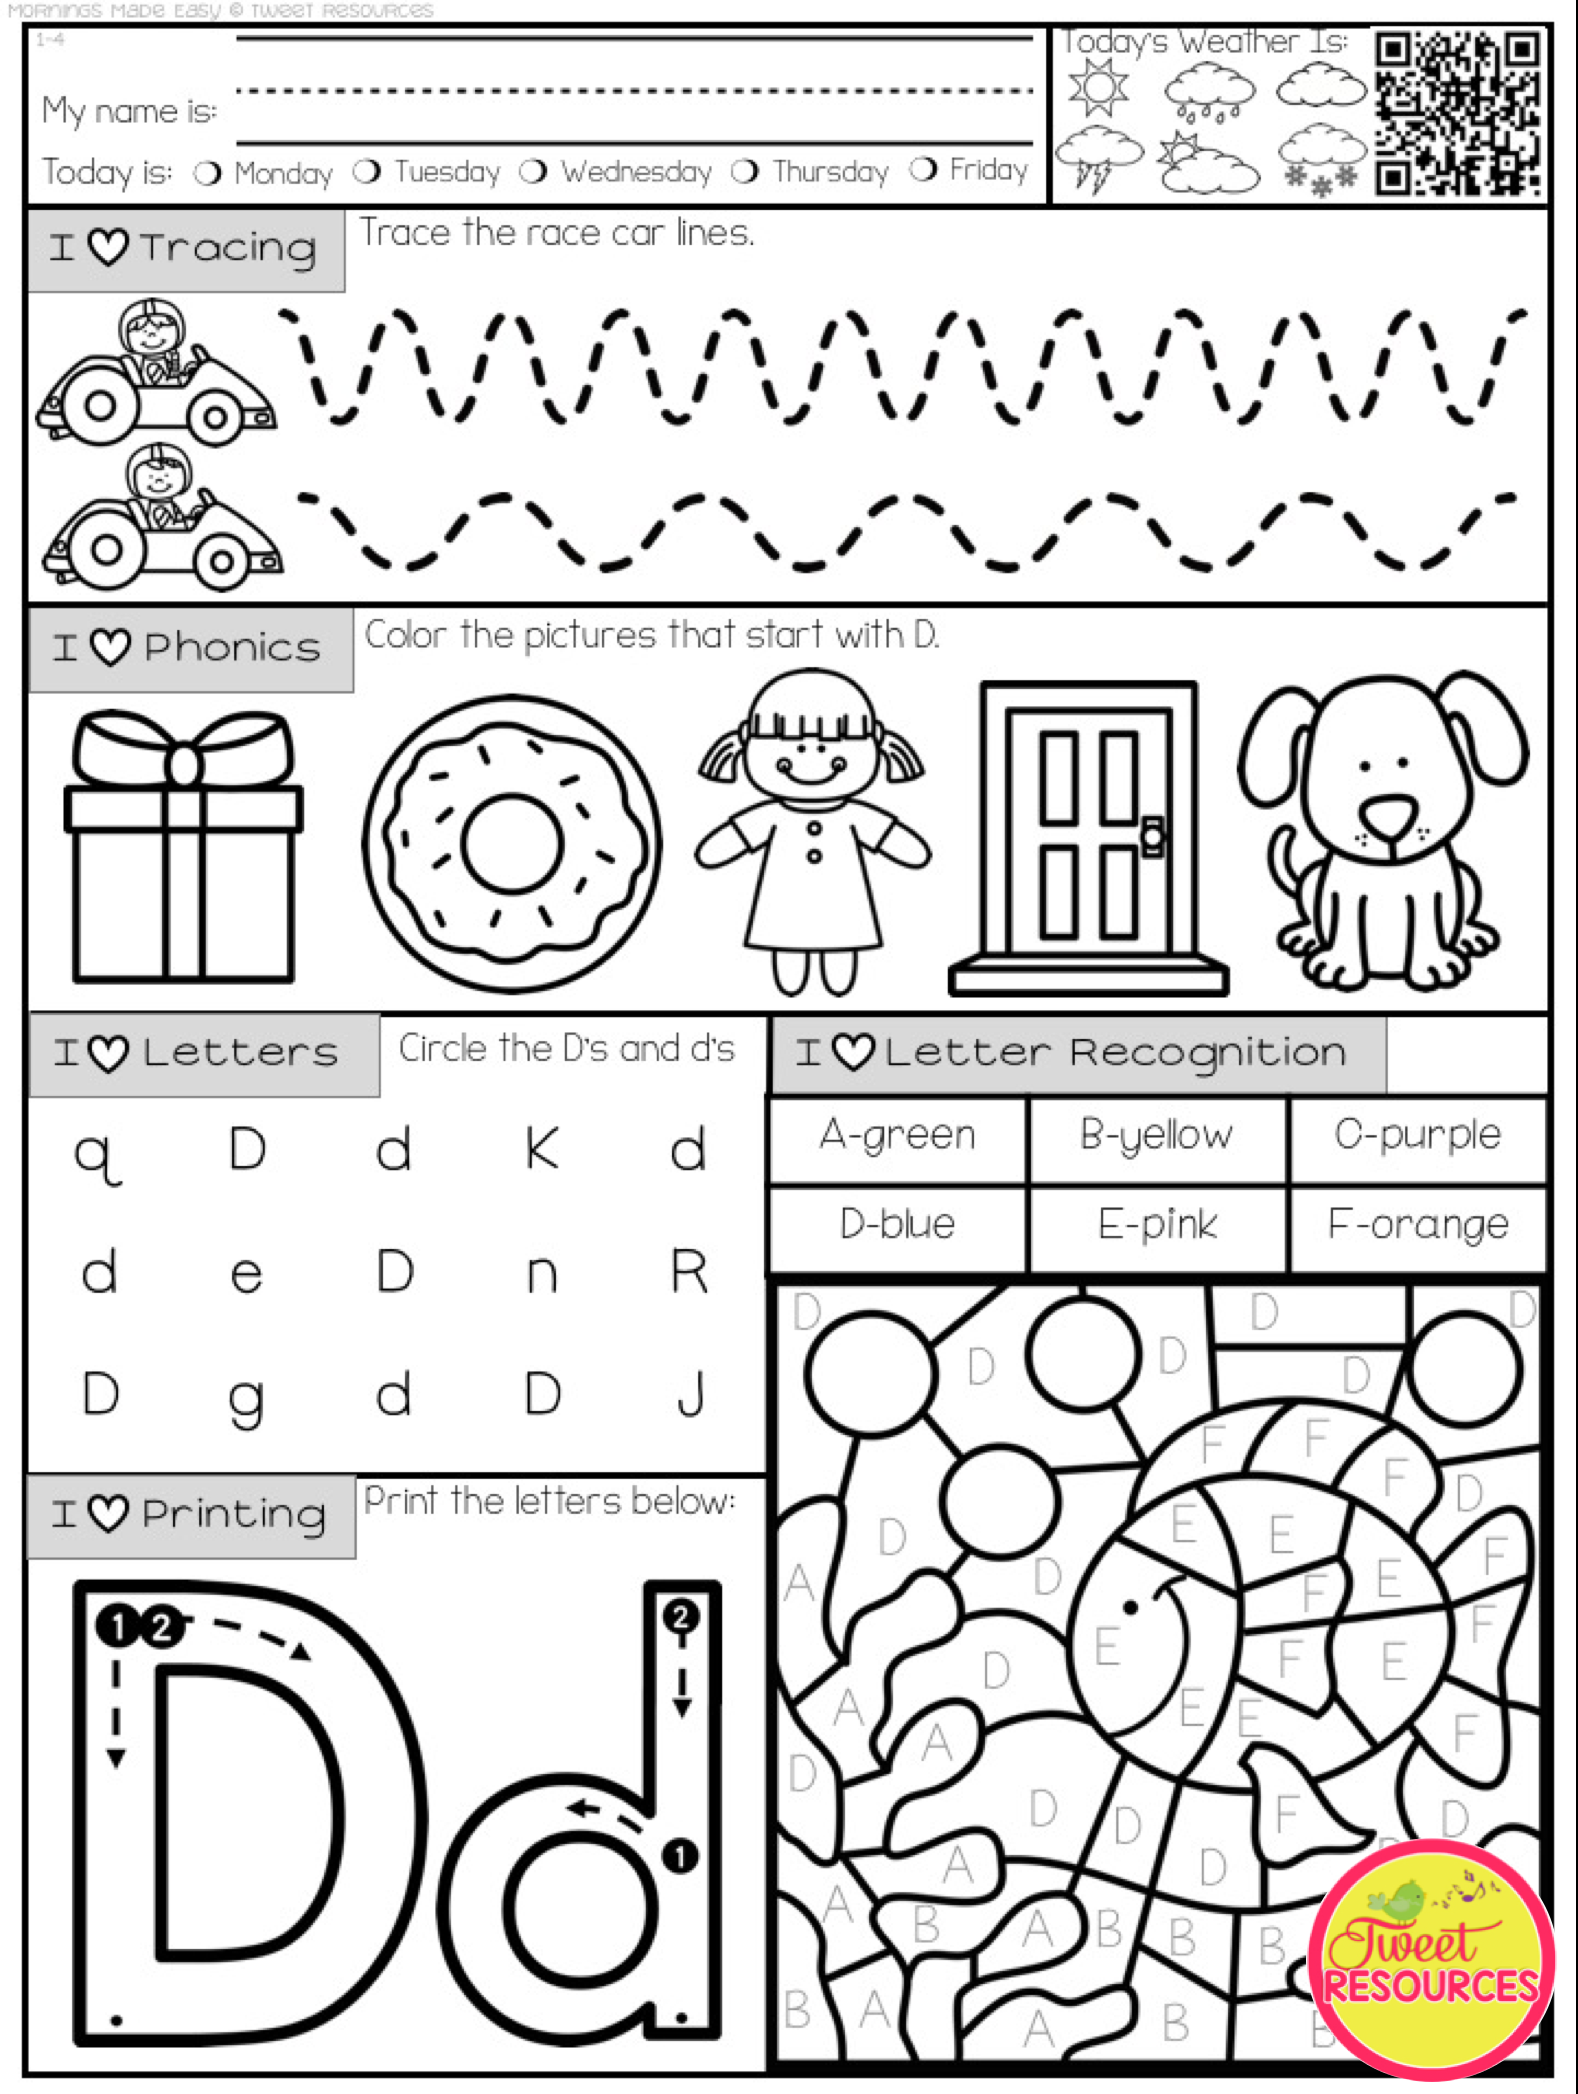 Mornings Made Easy! Kindergarten Morning Work By Tweet Resources Set